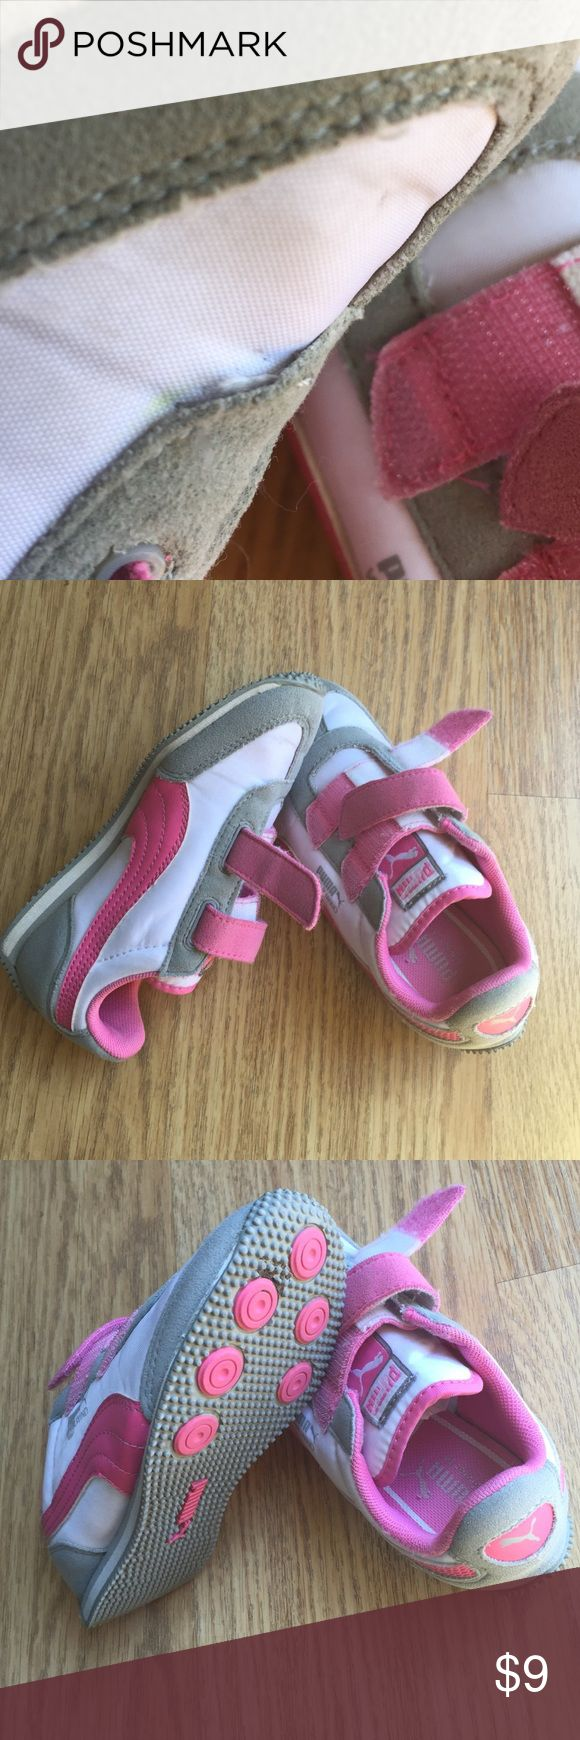 Pink Puma sneakers for girls. Infant size 12 Pink Puma Sport Sneakers in clean condition, size 12 for a child. The right has about two seams lines broken but in strong reusable condition. Normal signs of used at soles. Puma Shoes Sneakers